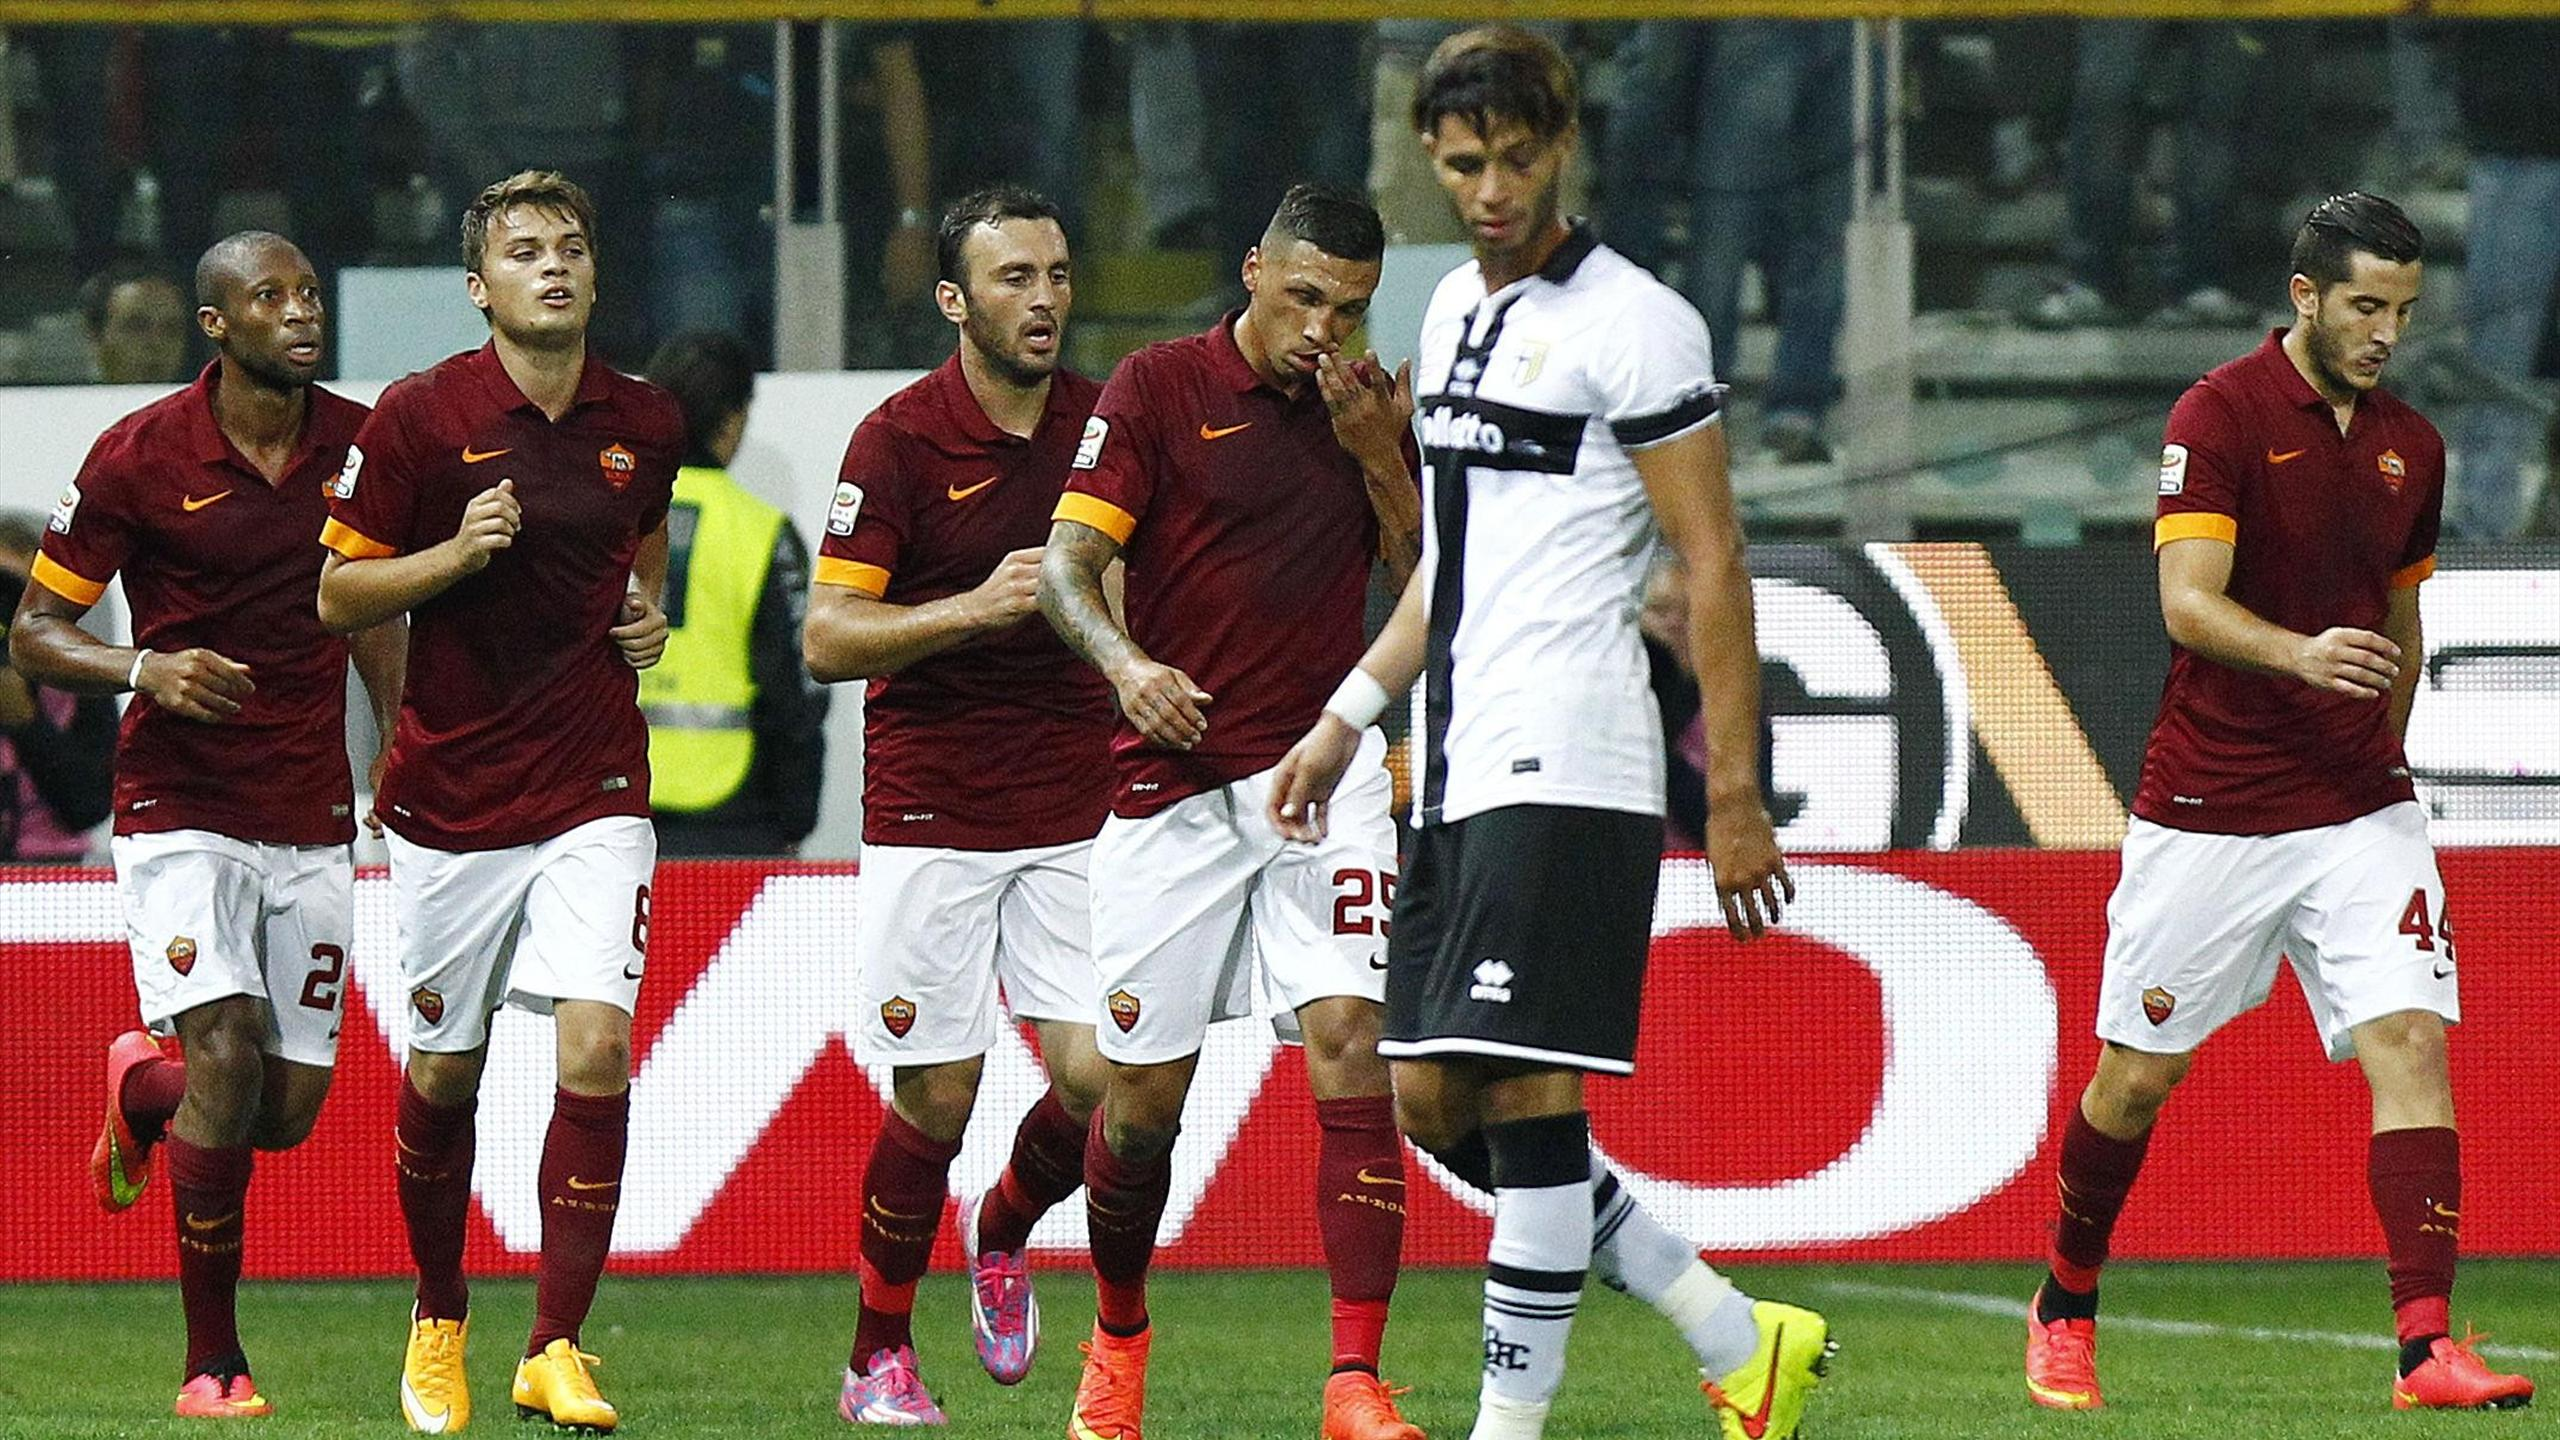 Video: Parma vs AS Roma